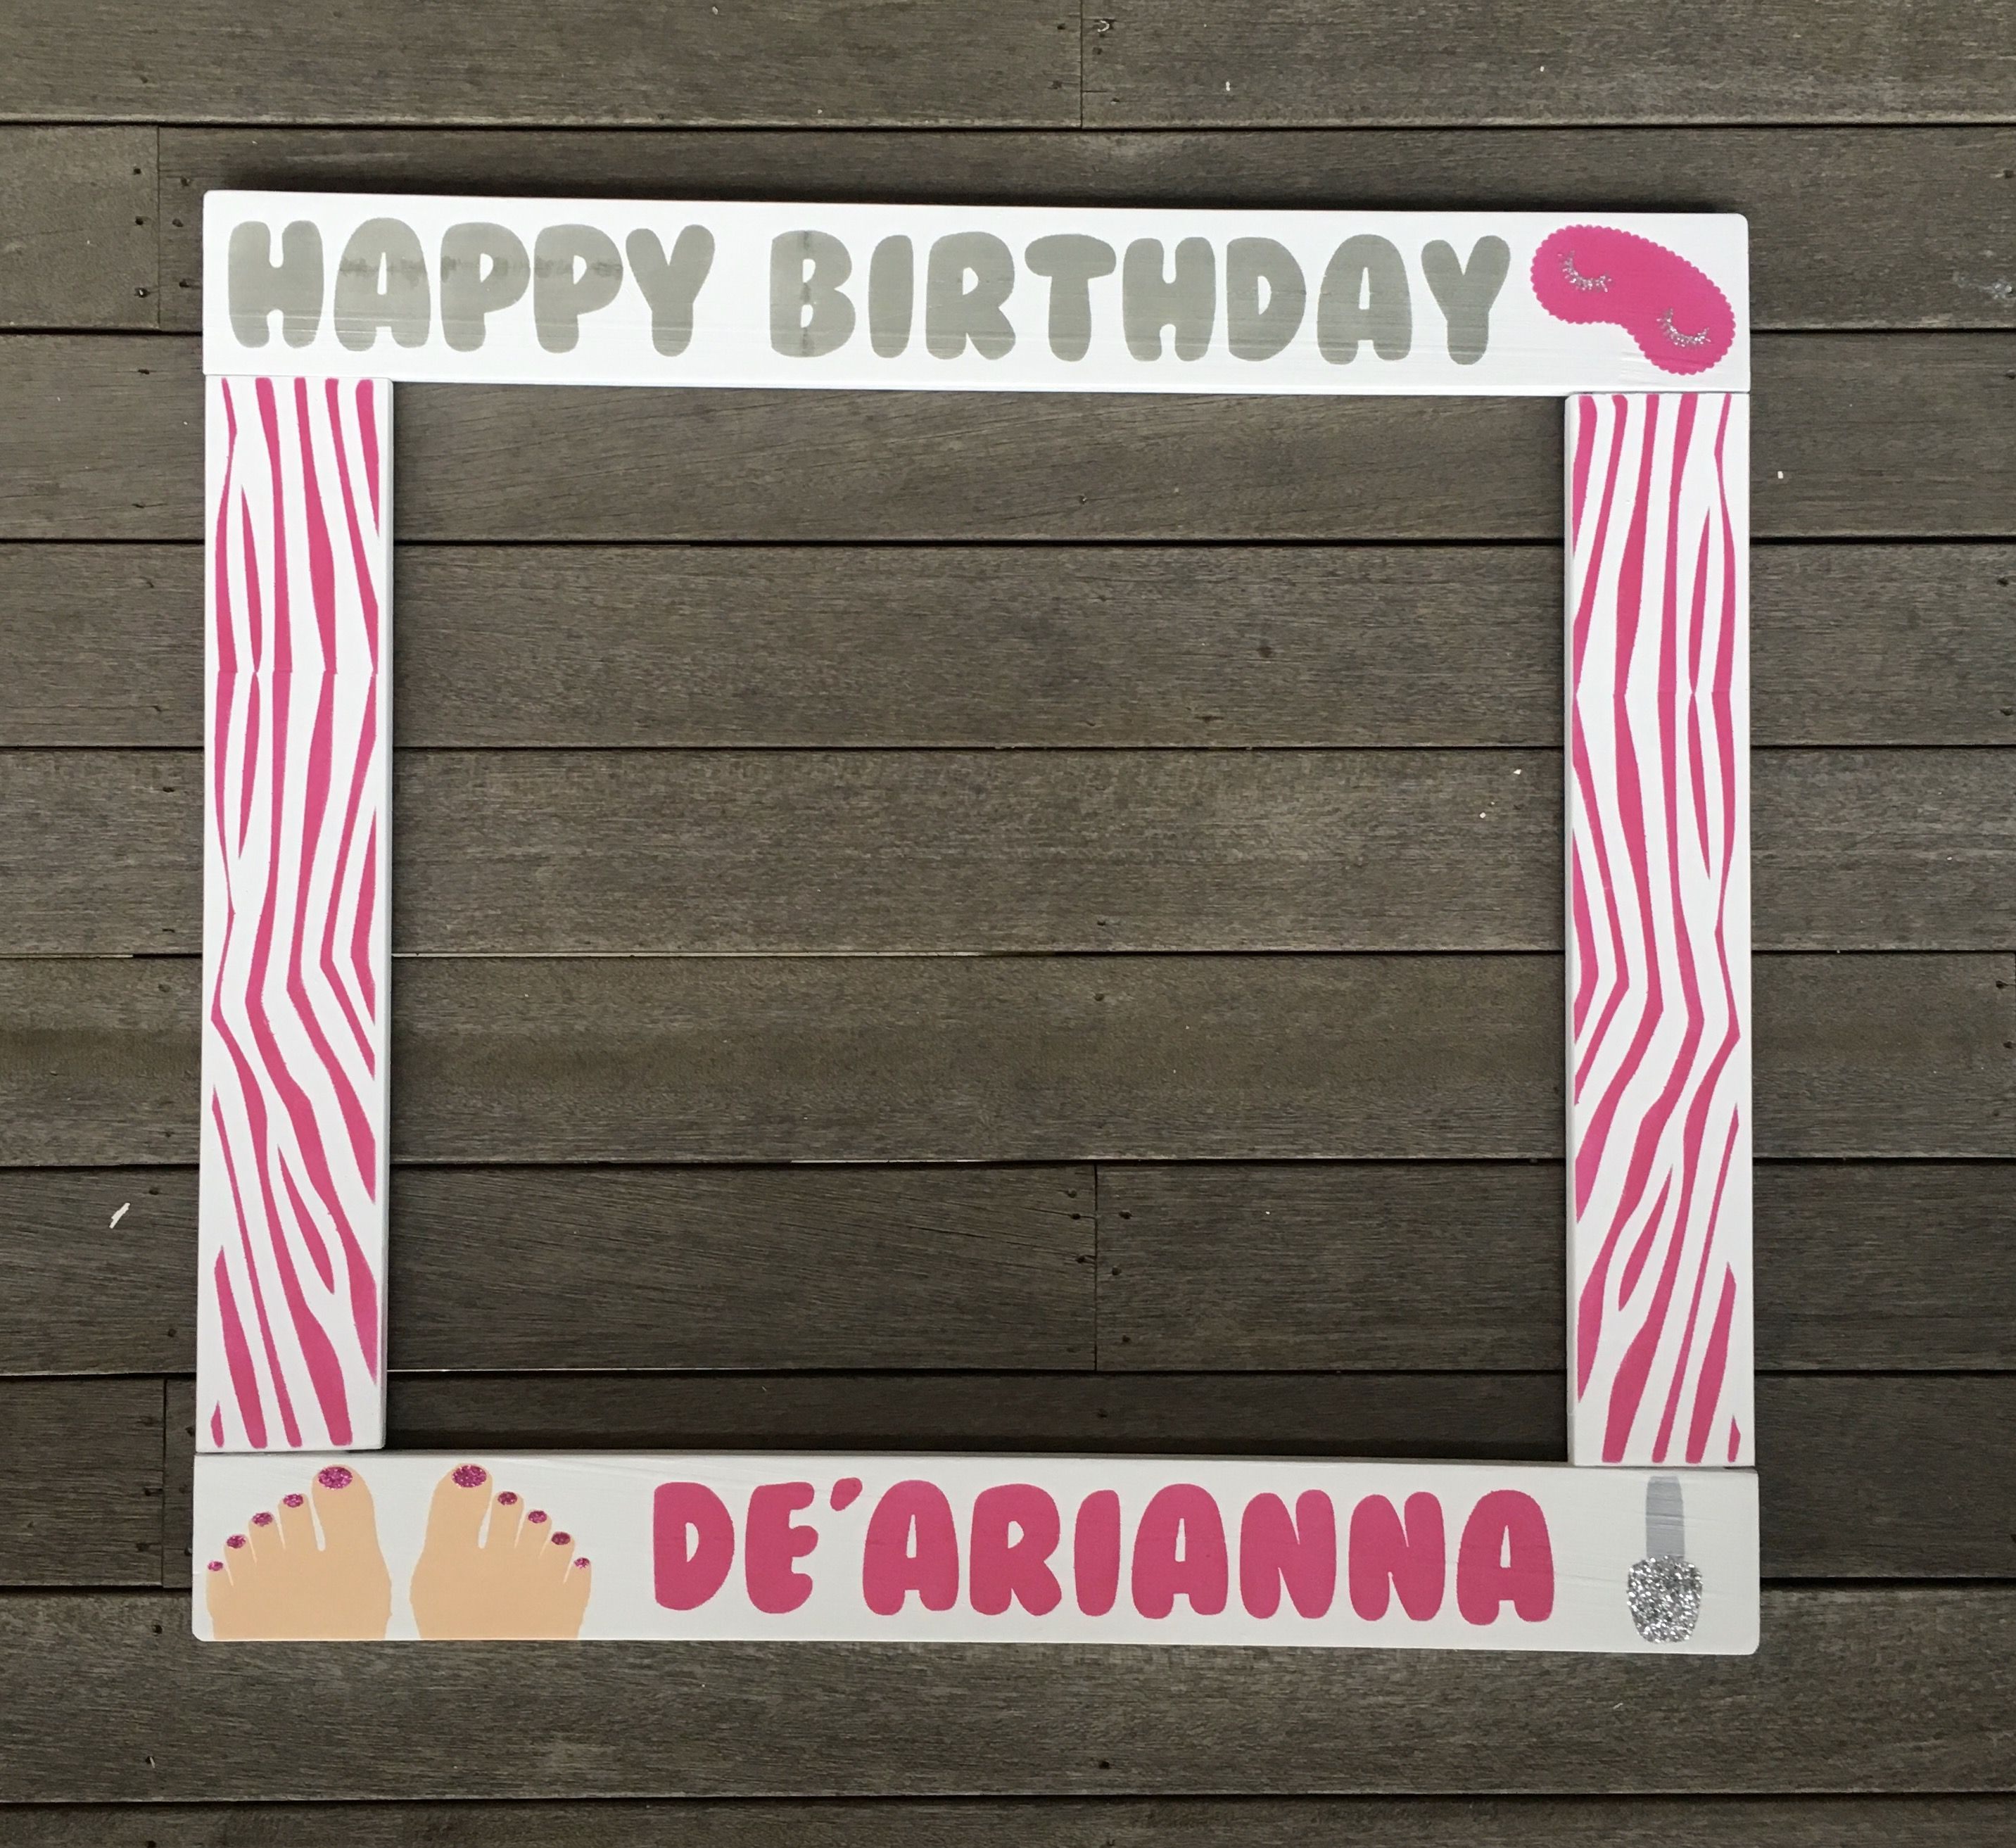 SPA PARTY PHOTOBOOTH - Birthday Photo Booth Frame - Wood Photobooth ...